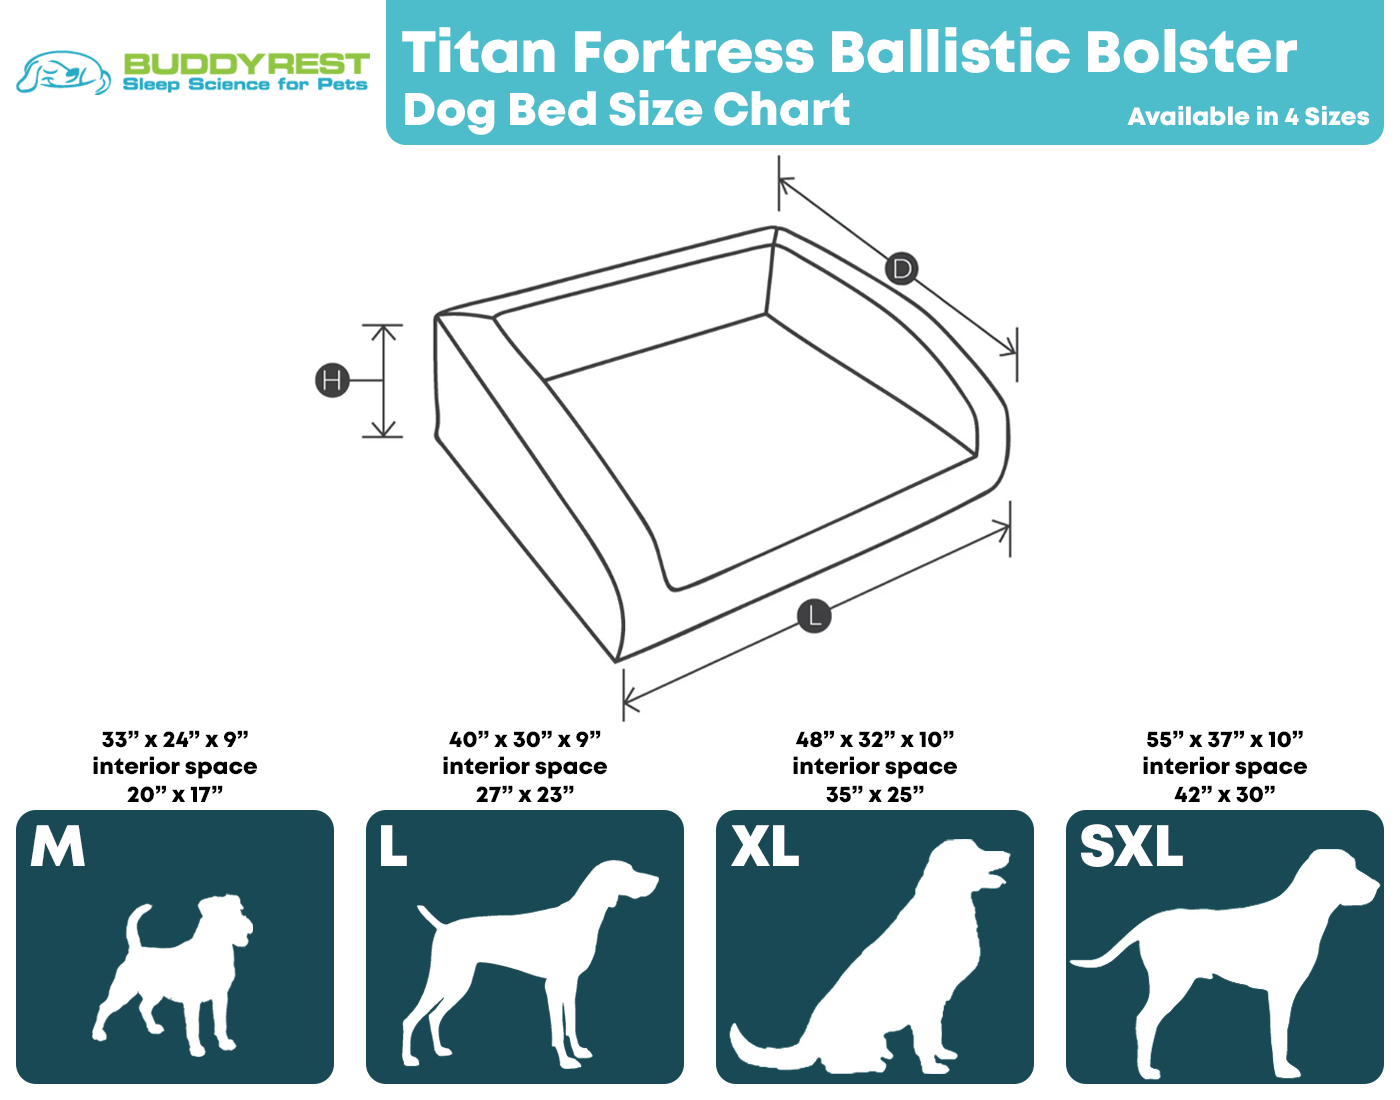 Titan Fortress Dog Bed Size Chart